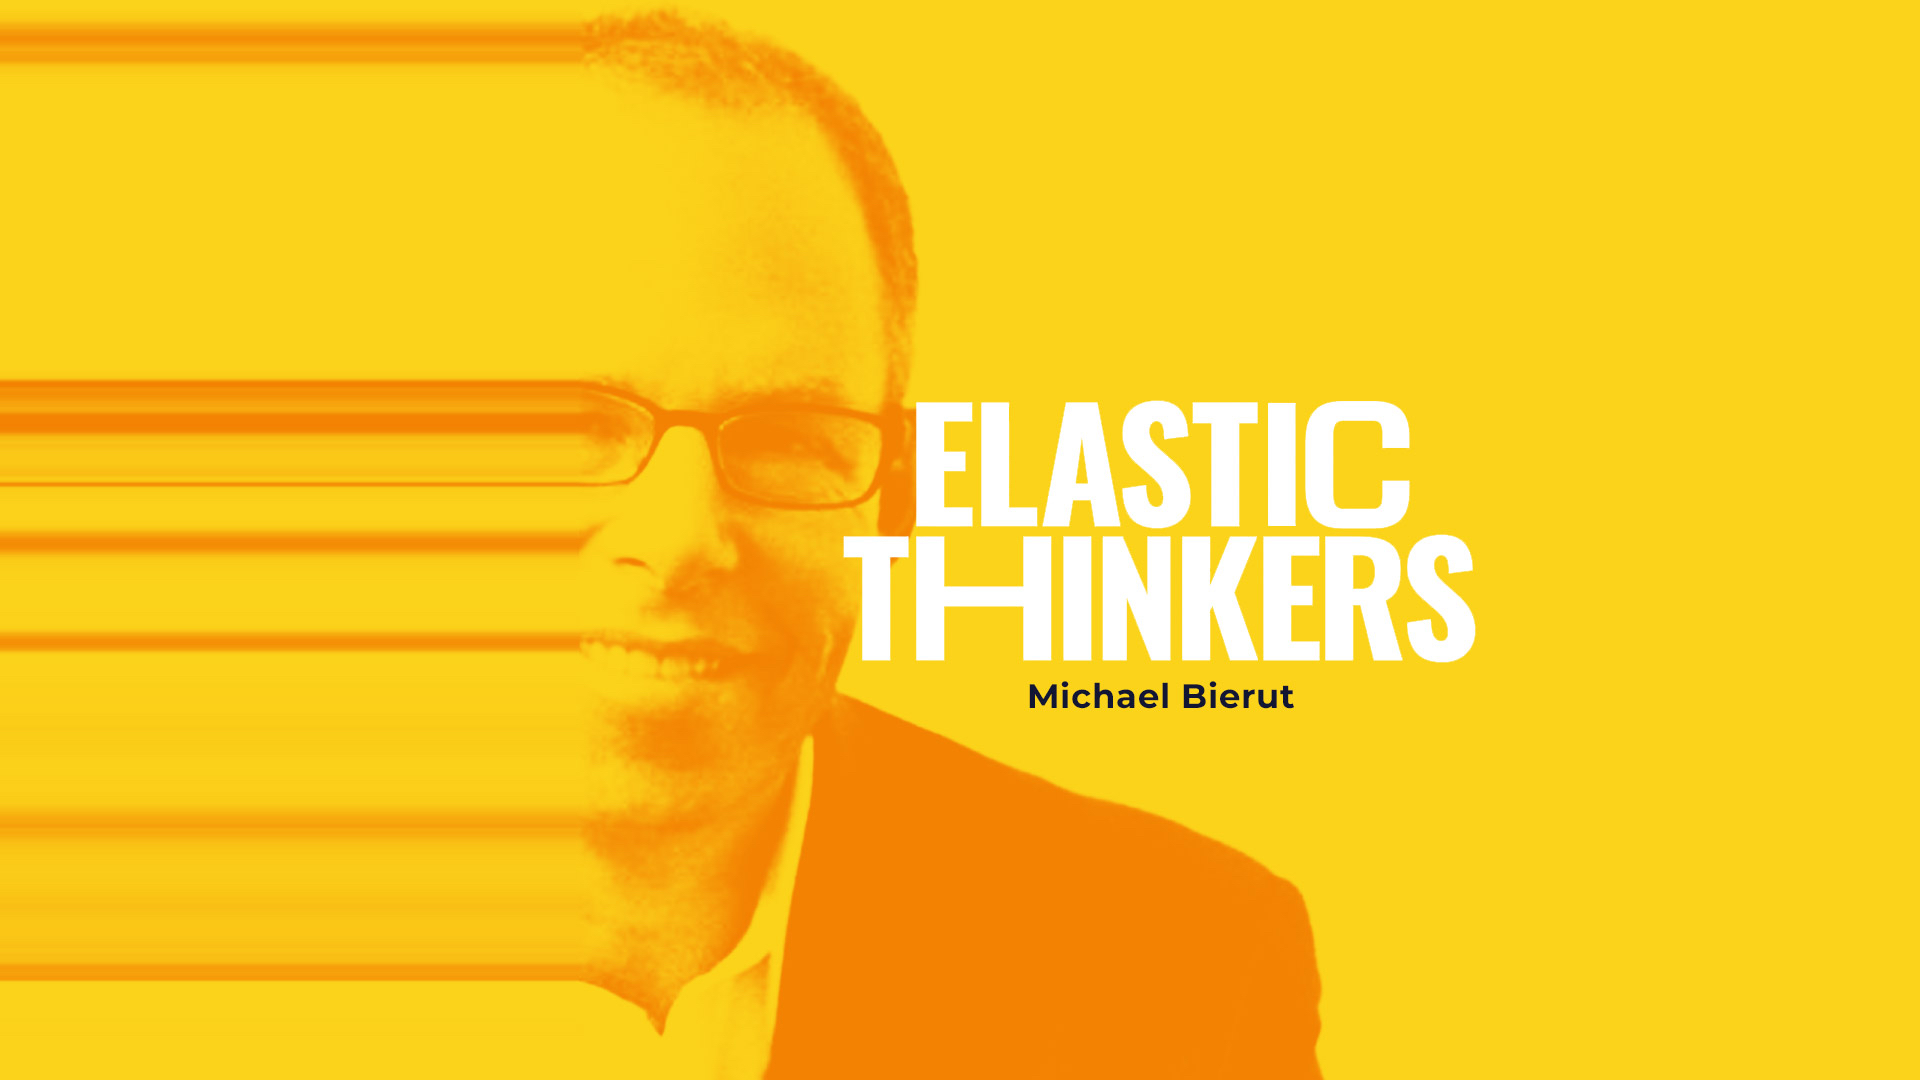 Image of the designer Michael Bierut